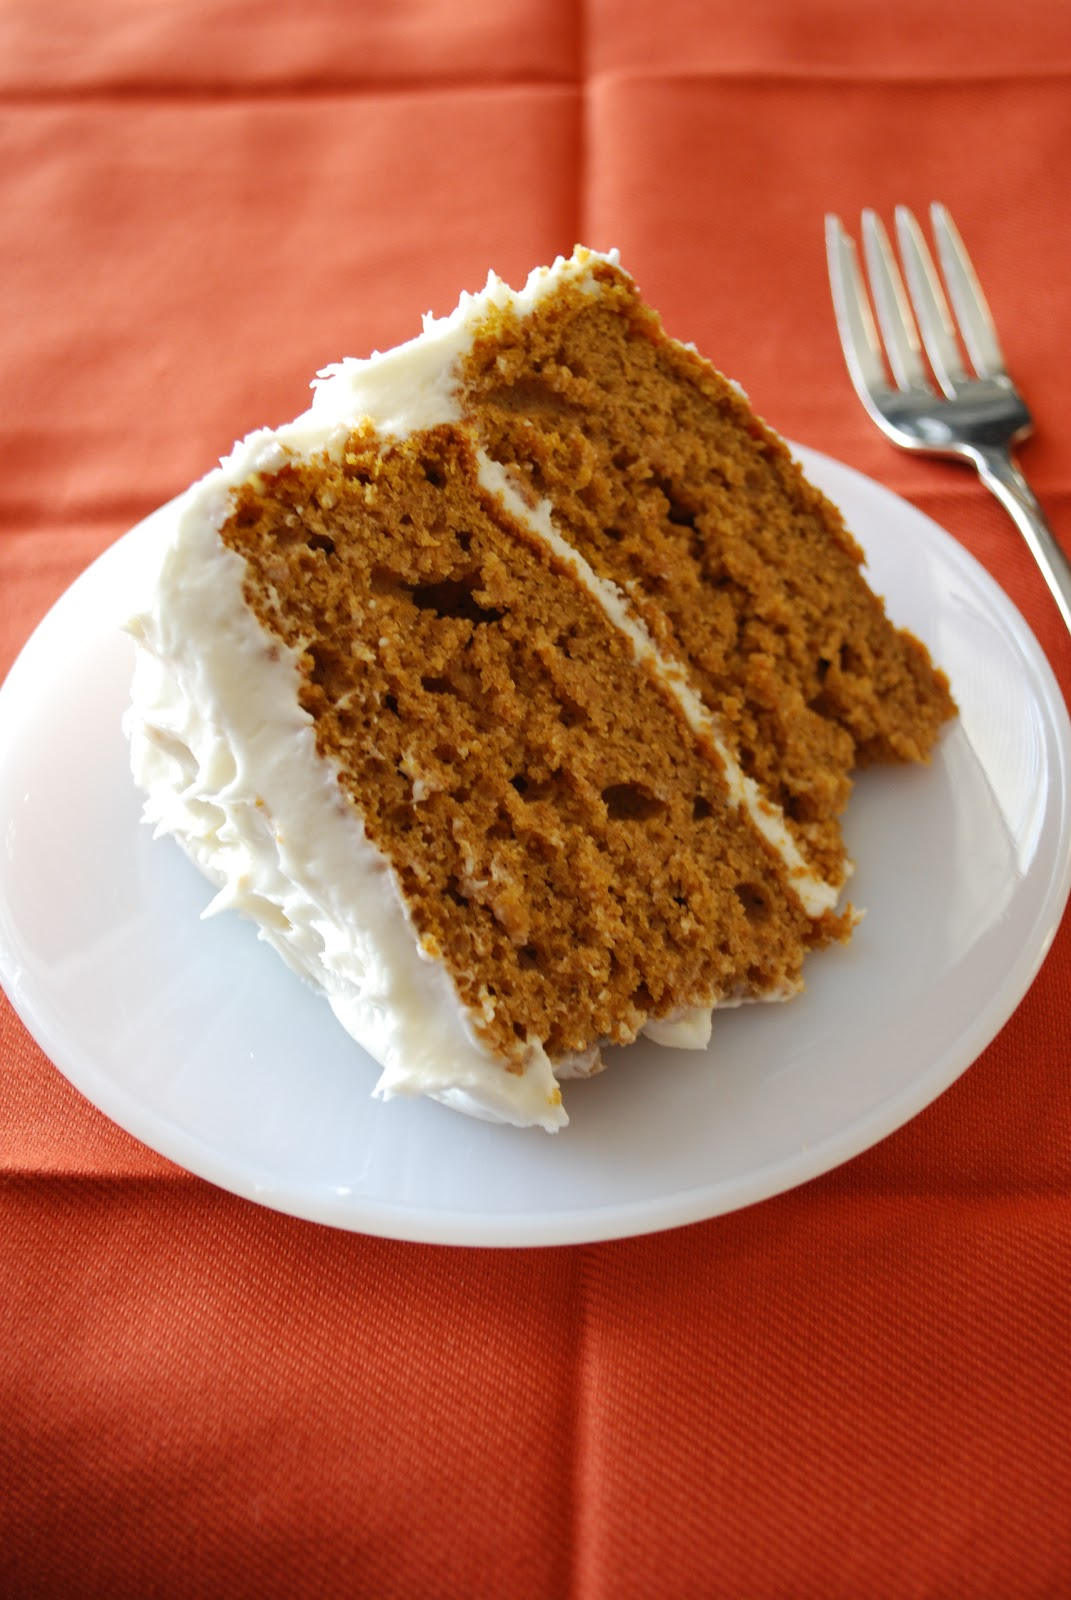 What Is The Best Flavor Frosting For Spice Cake